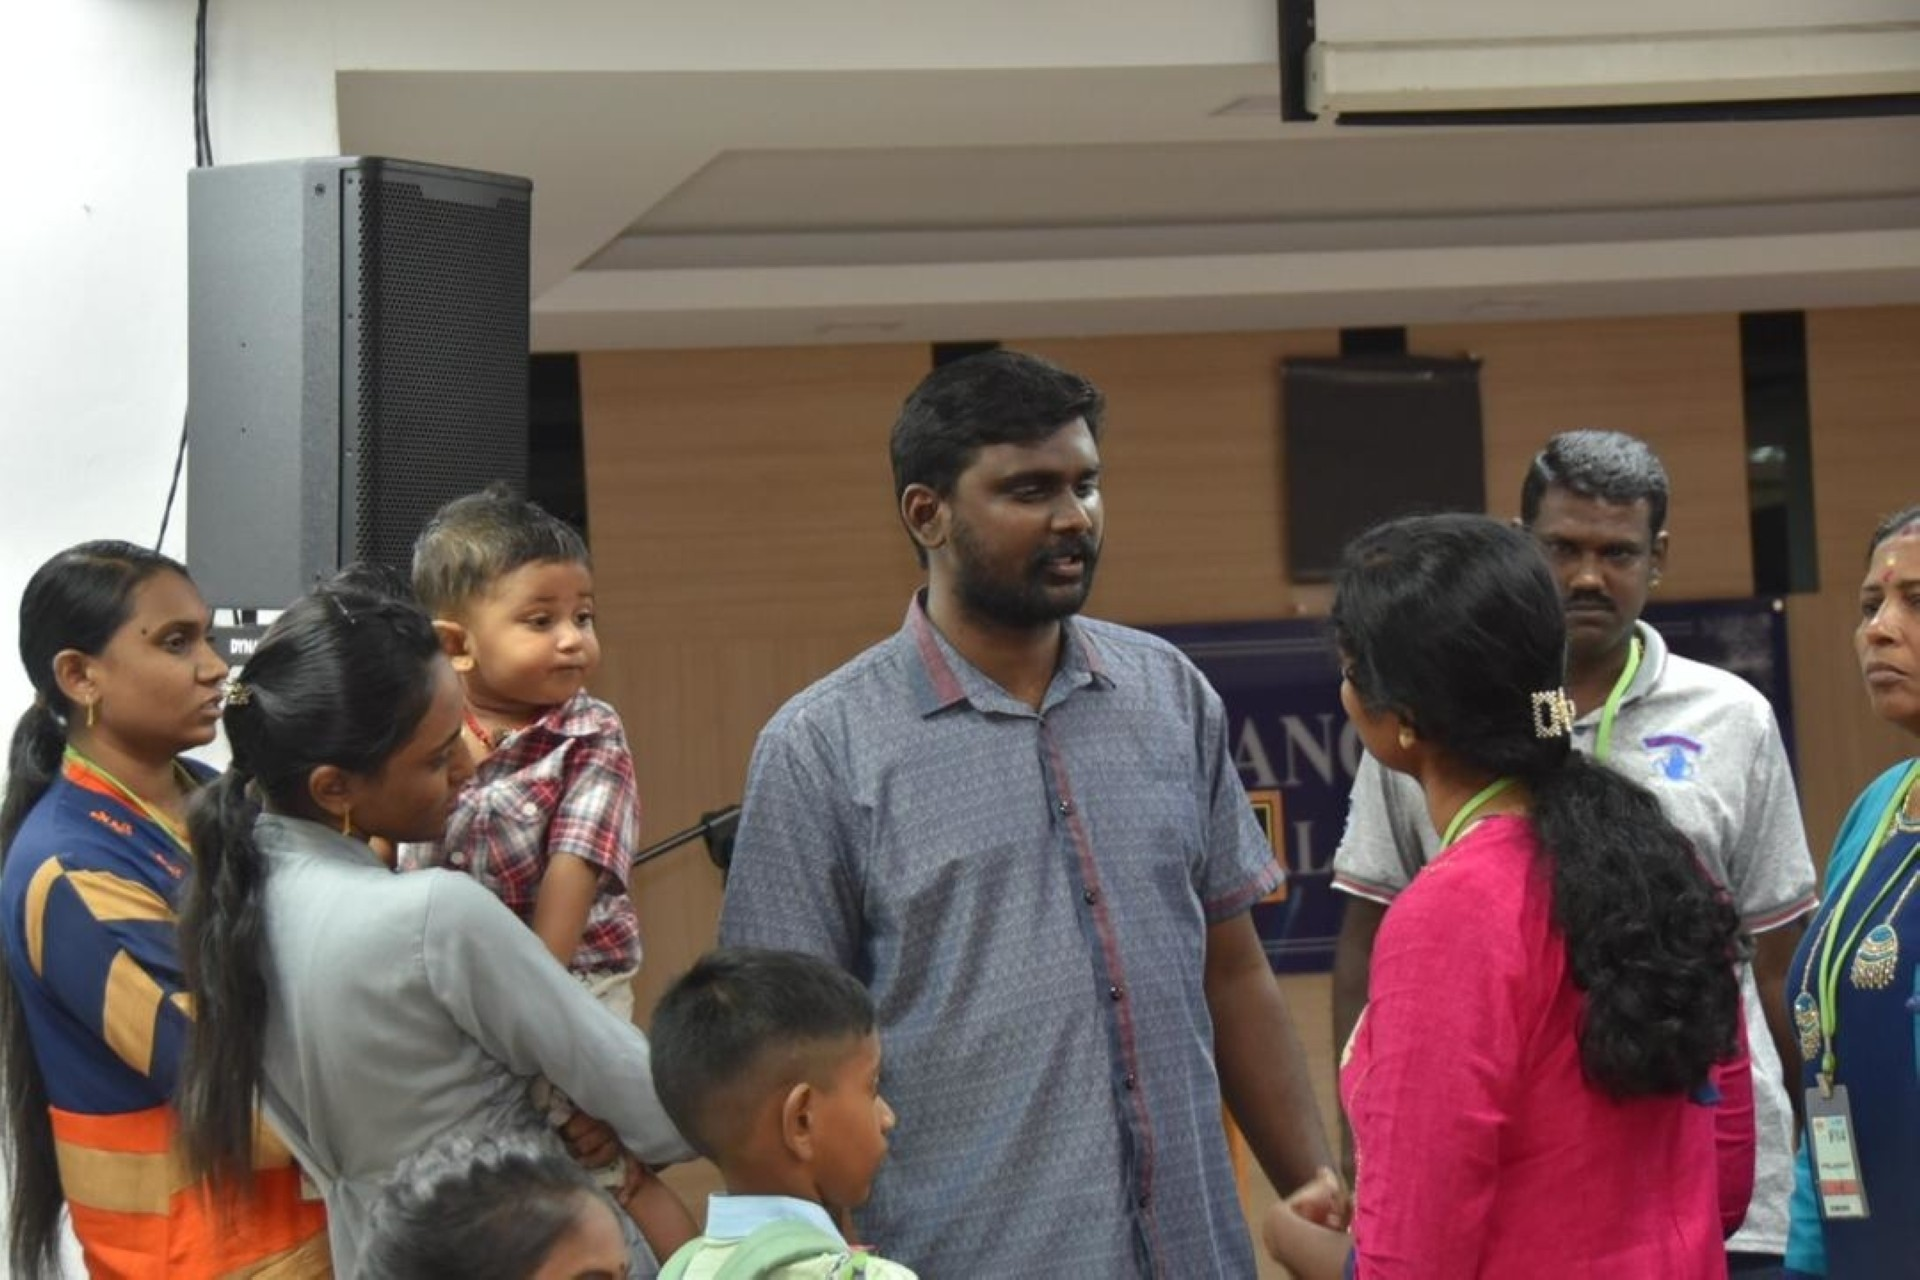 Stay calm: Saminathan (in purple shirt) talking to his family.